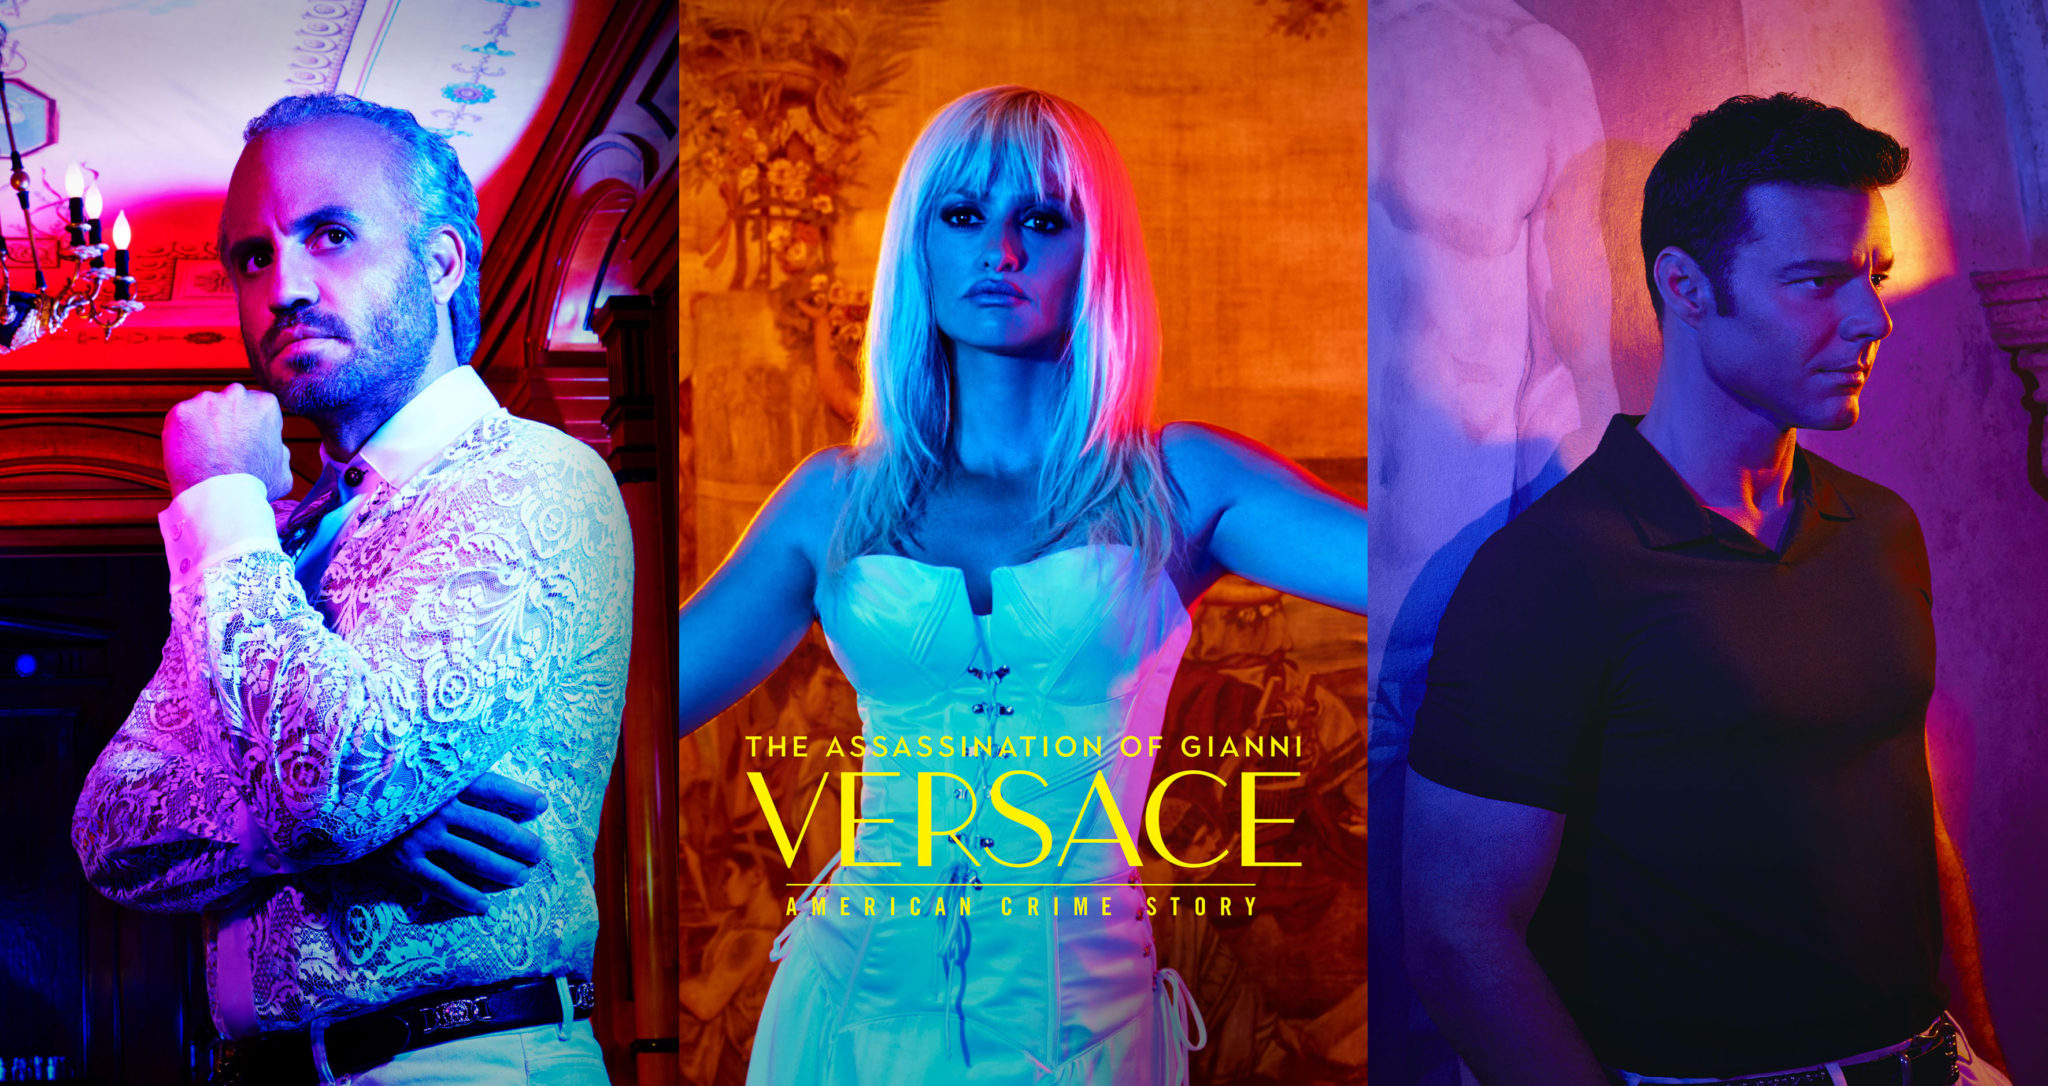 The-Assassination-of-Gianni-Versace